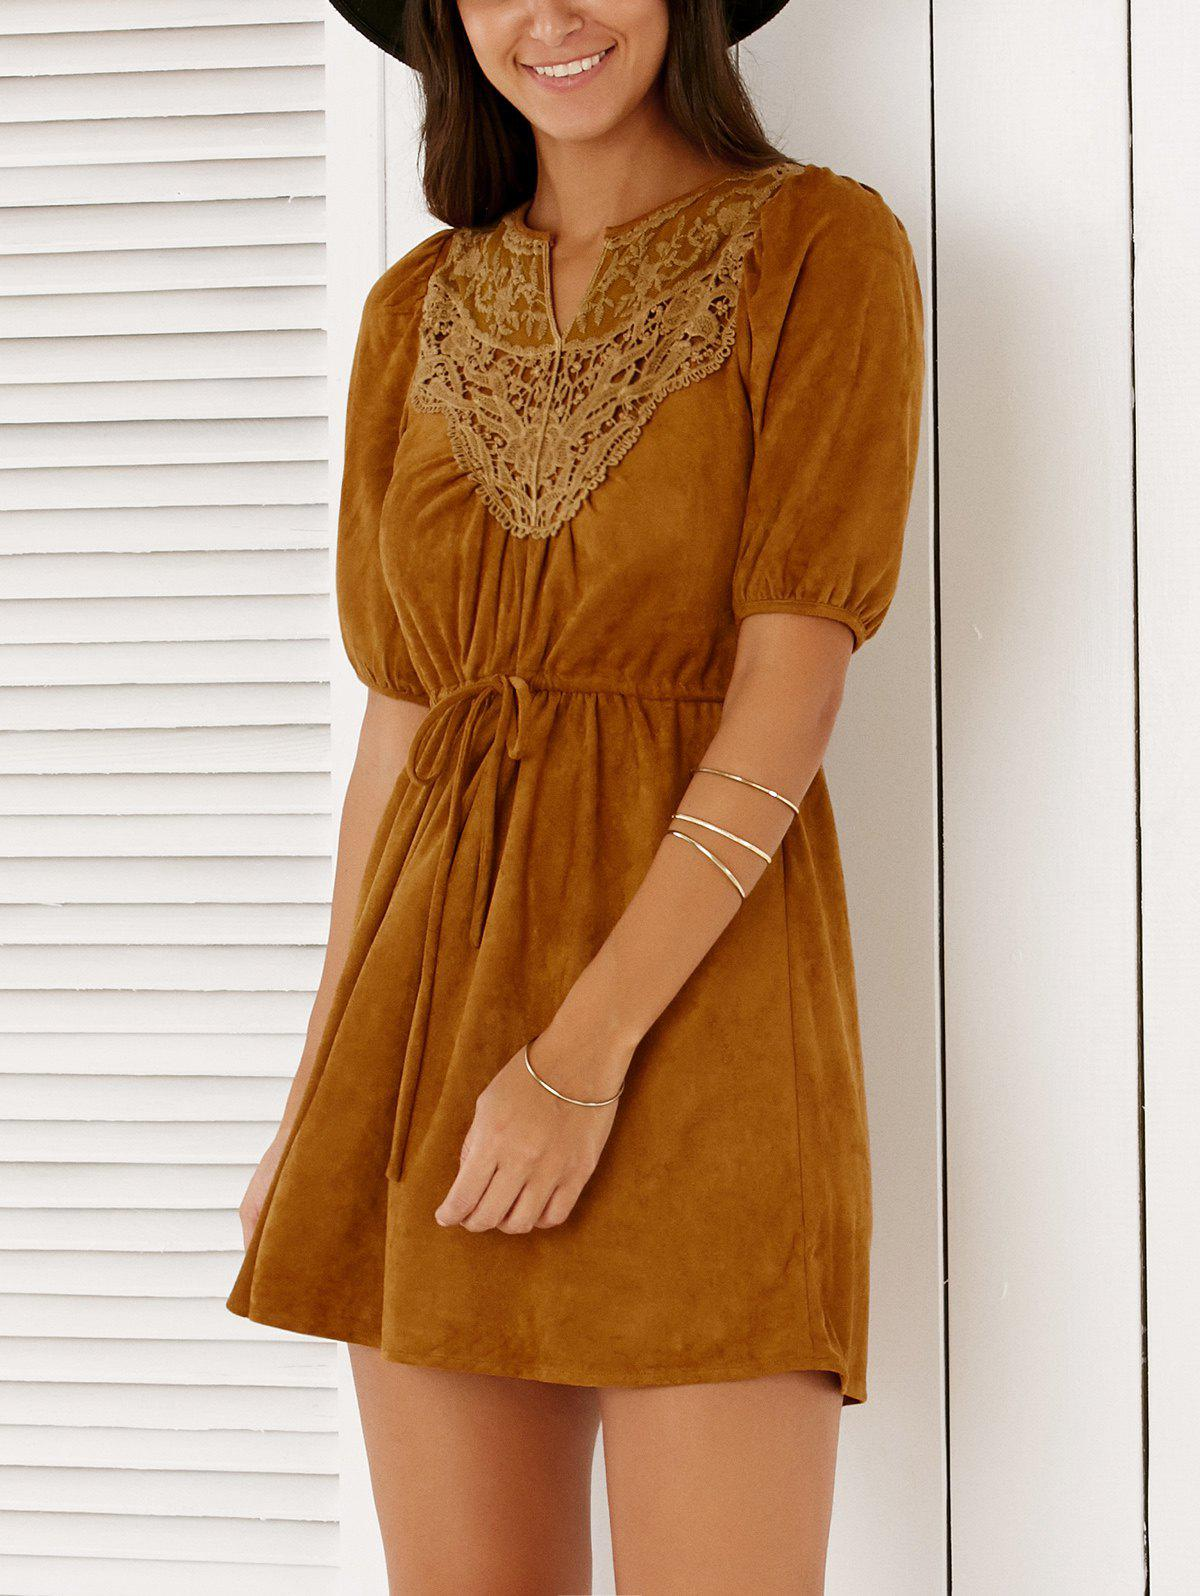 Lace Spliced Drawstring Solid Color Mini Dress For Women - DEEP BROWN XL